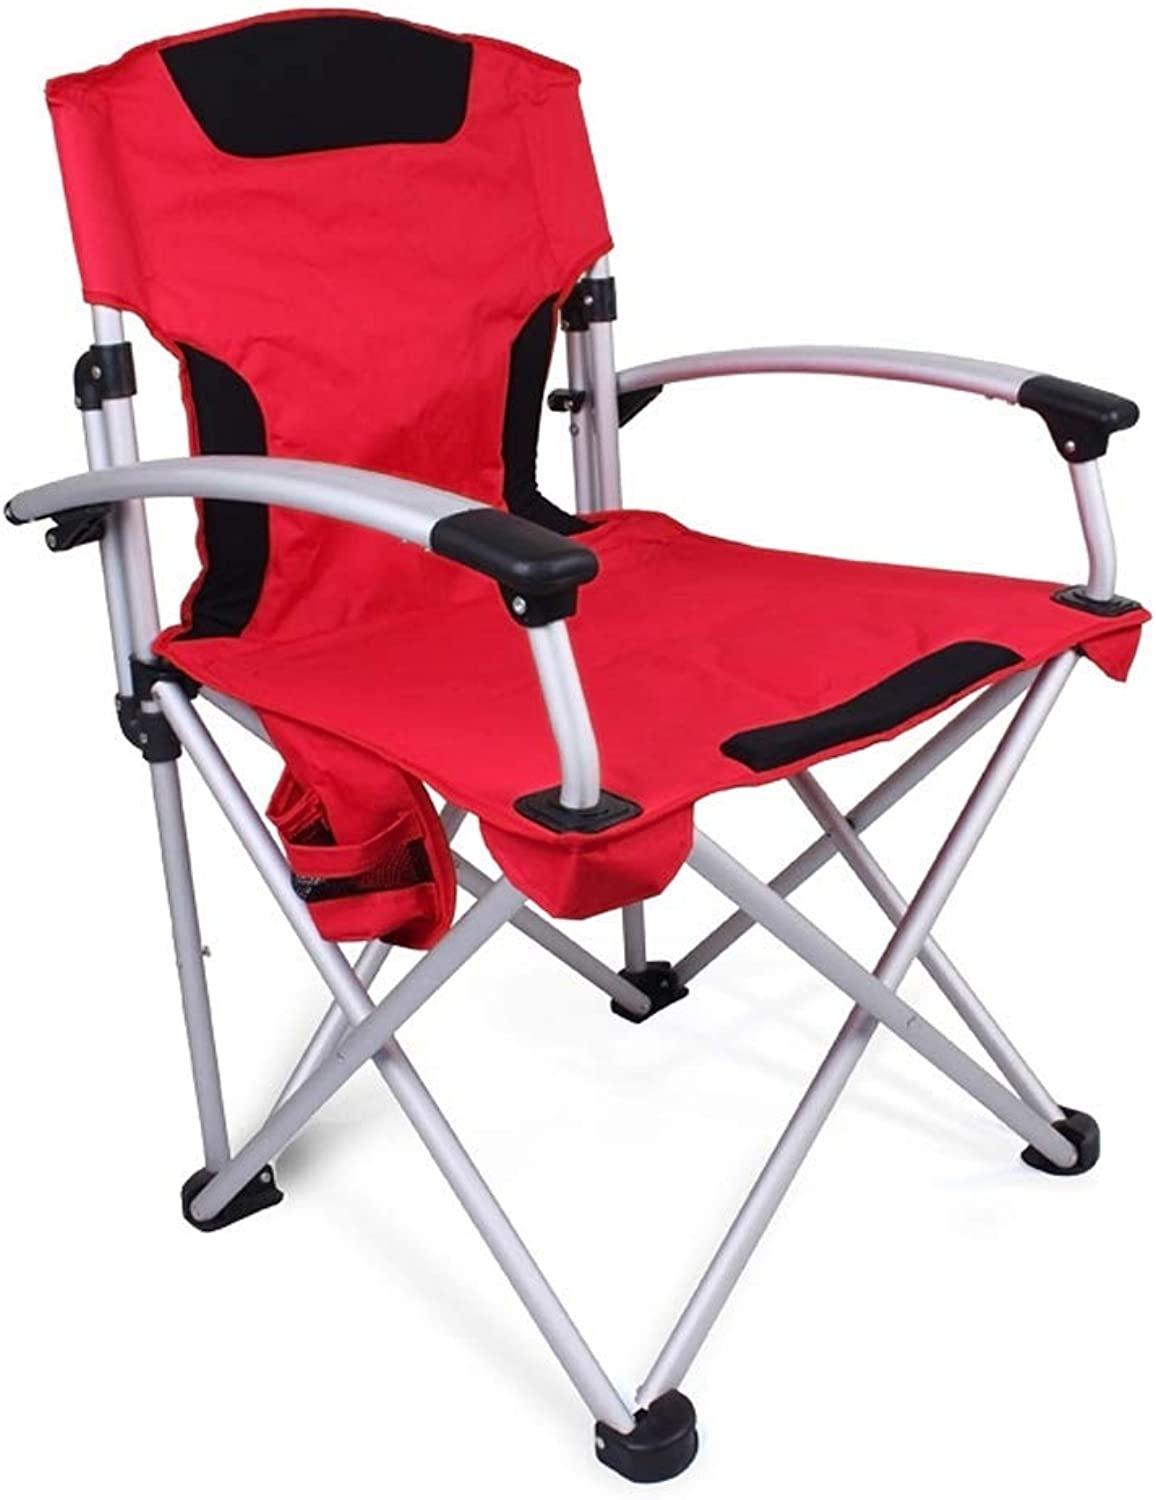 Outdoor Products Portable Folding Chairs Folding Stool Outdoor Family Garden Picnic Travel Barbecue Beach Chair